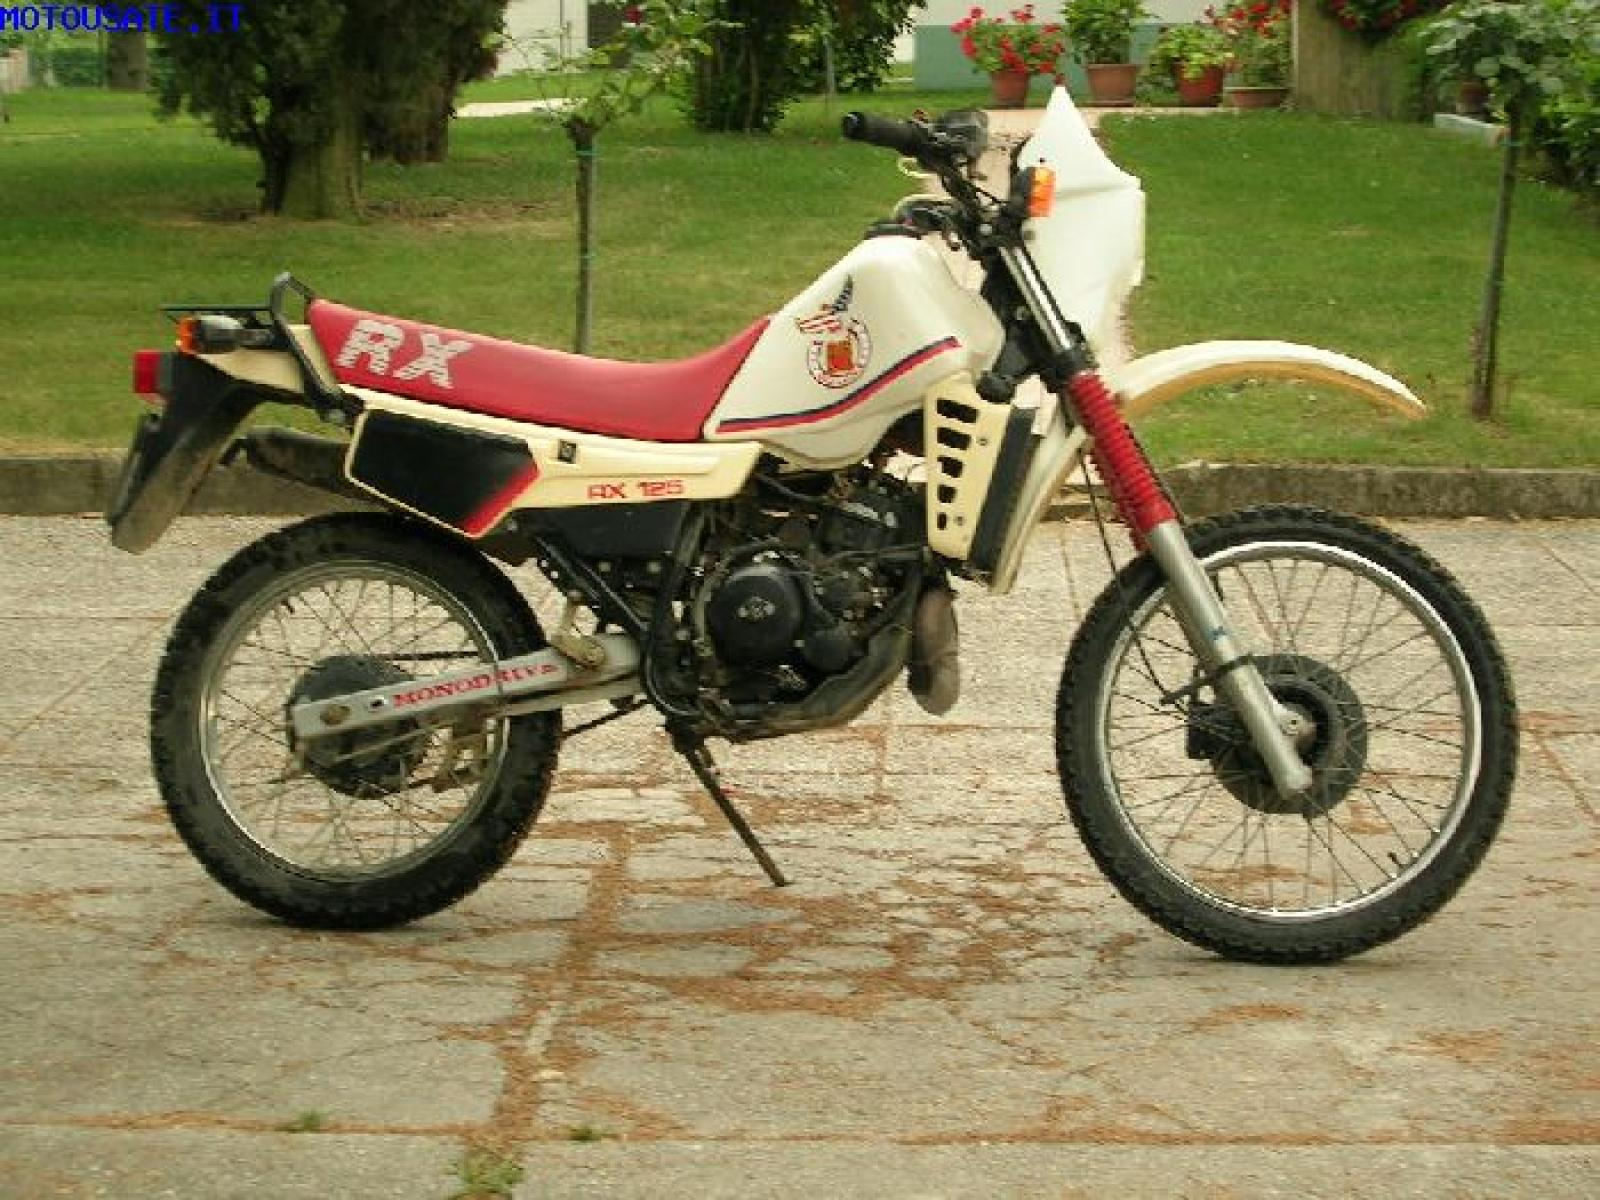 Gilera RX 125 Arizona 1985 images #73257